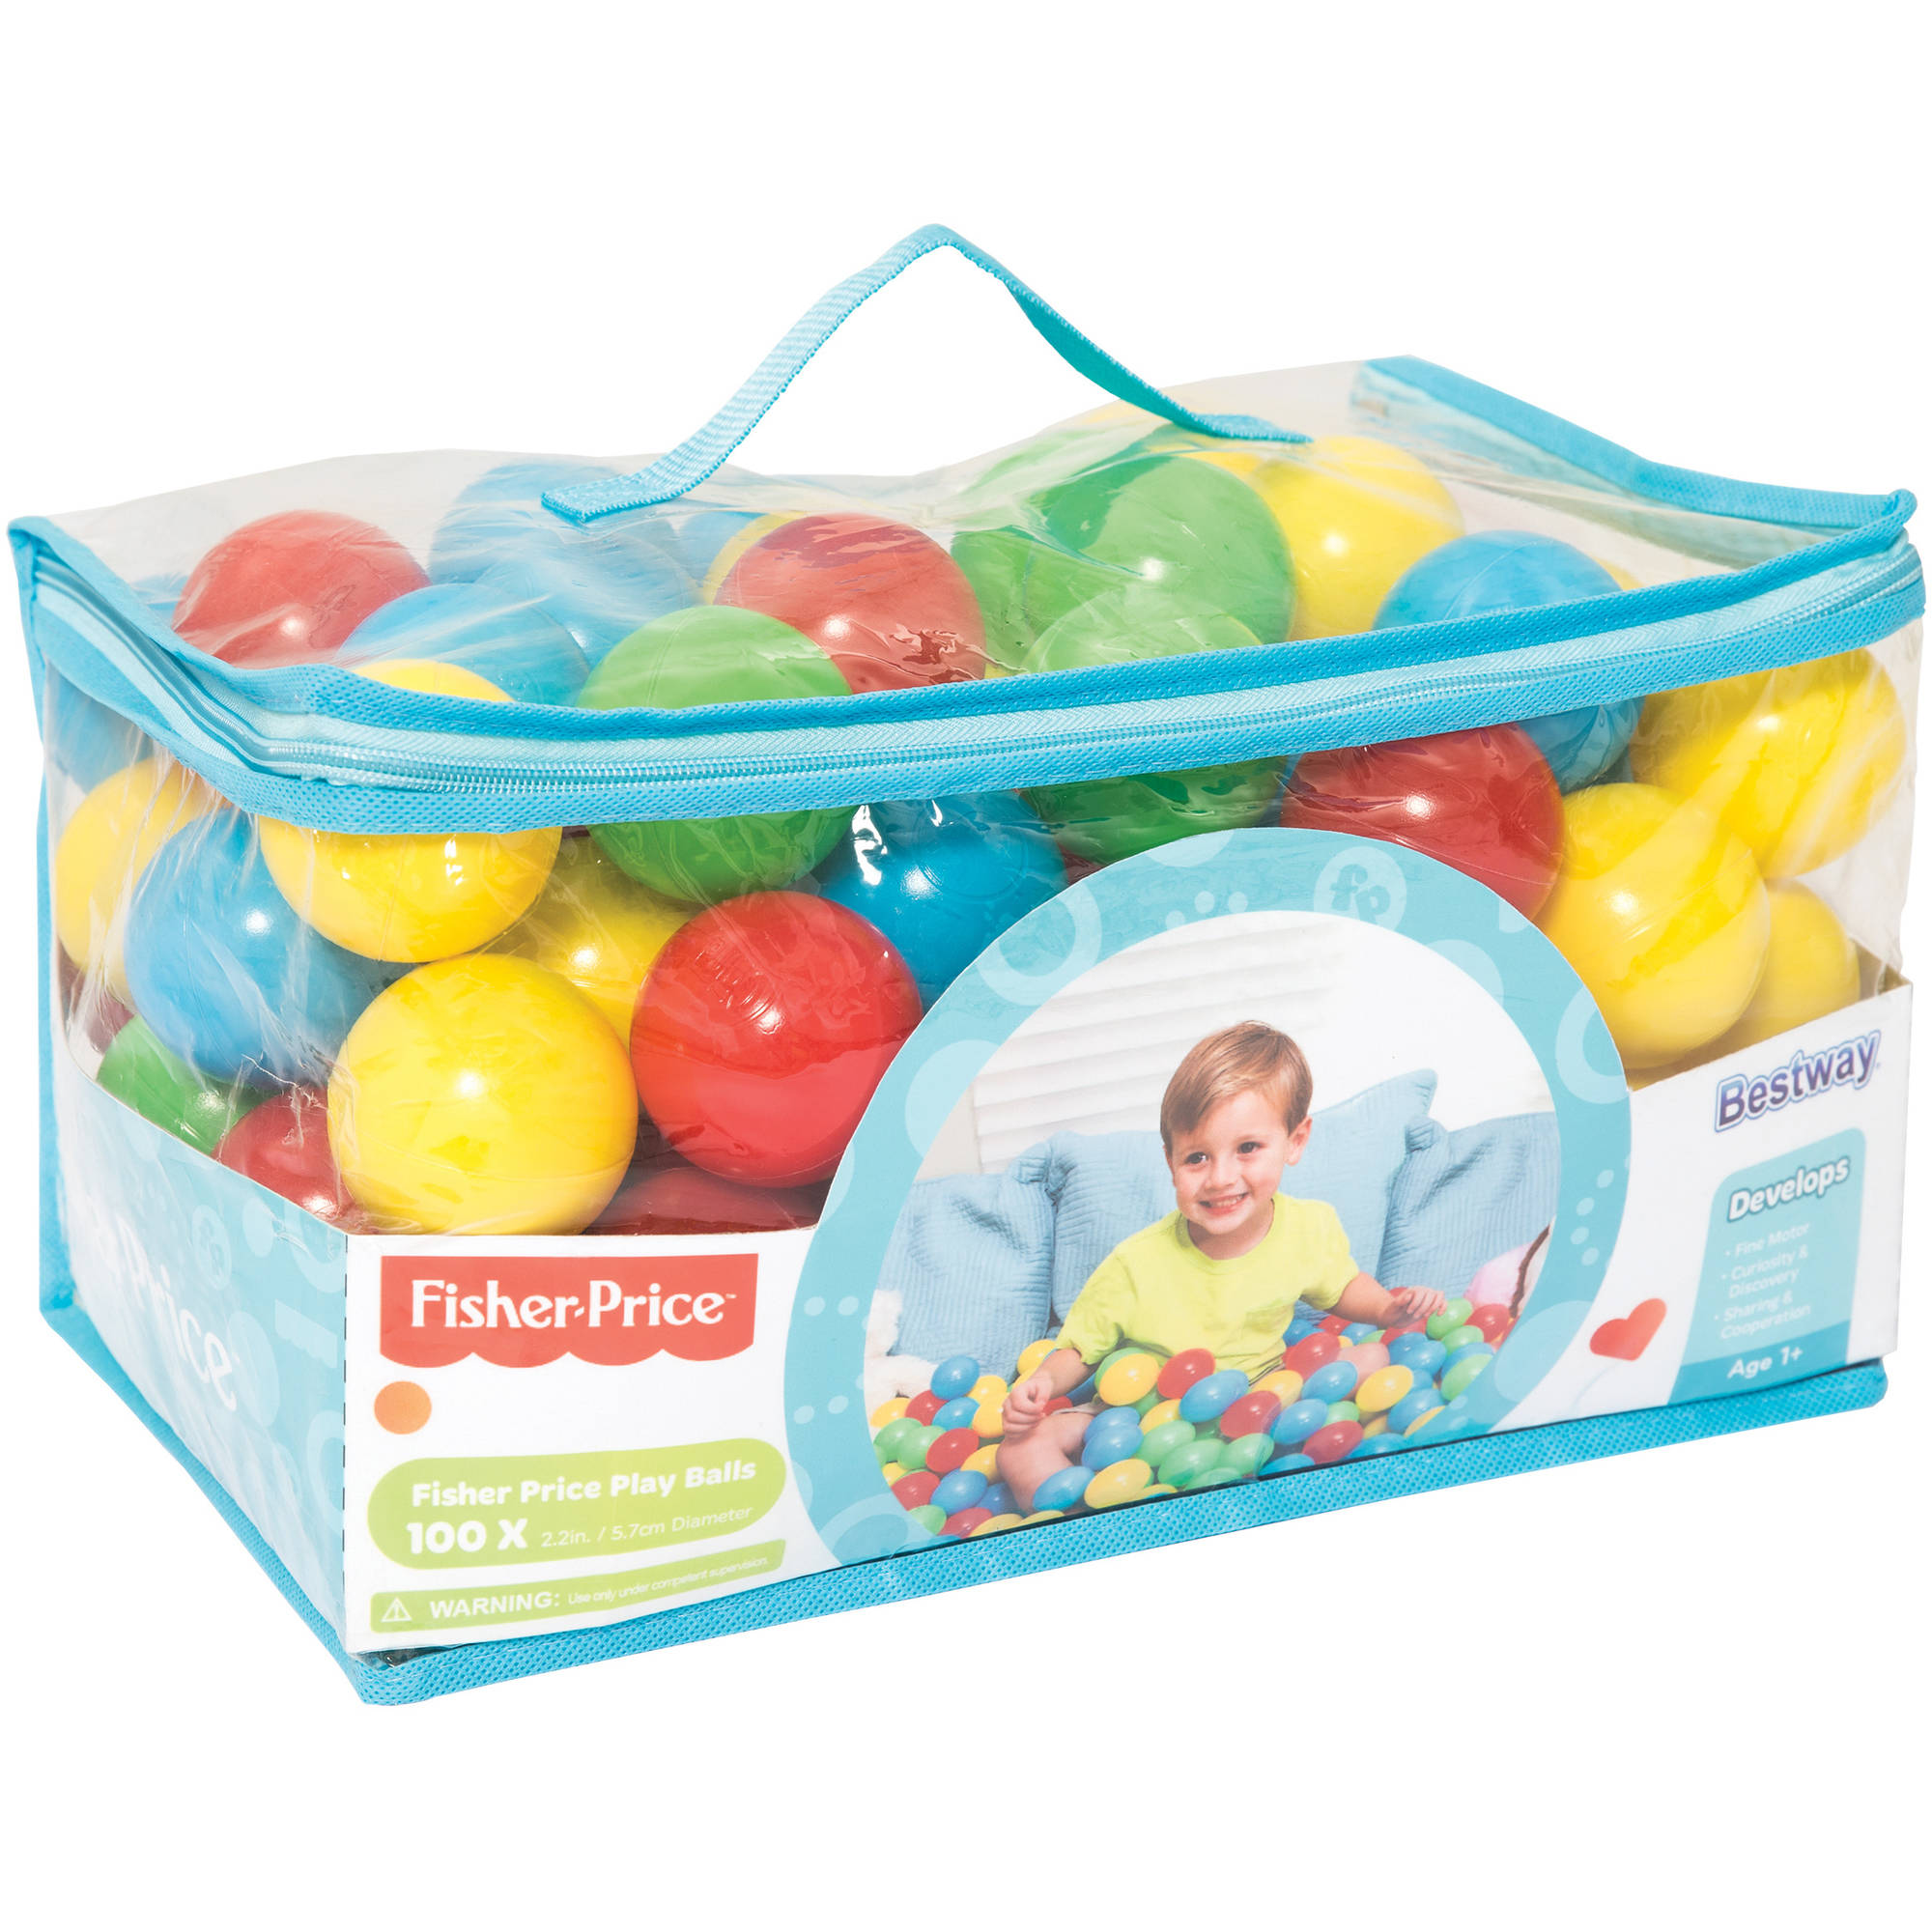 Fisher Price 100 Play Balls by BESTWAY HONG KONG INTERNATIONAL LIMITED